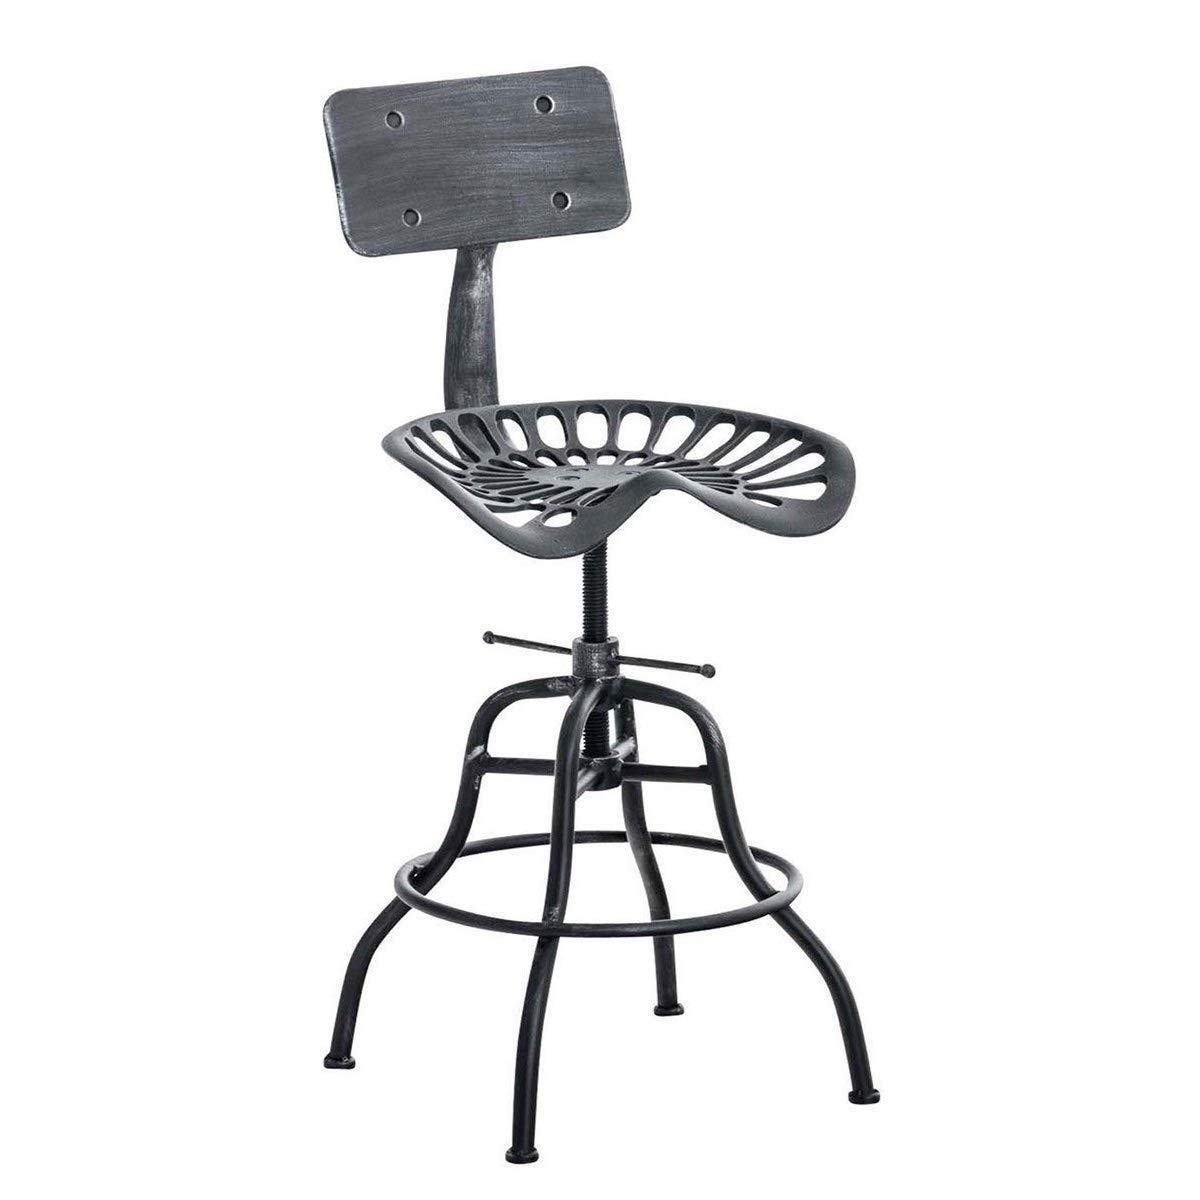 Astounding 51 Unique Bar Stools That Are Cool Addition To Your Kitchen Gamerscity Chair Design For Home Gamerscityorg